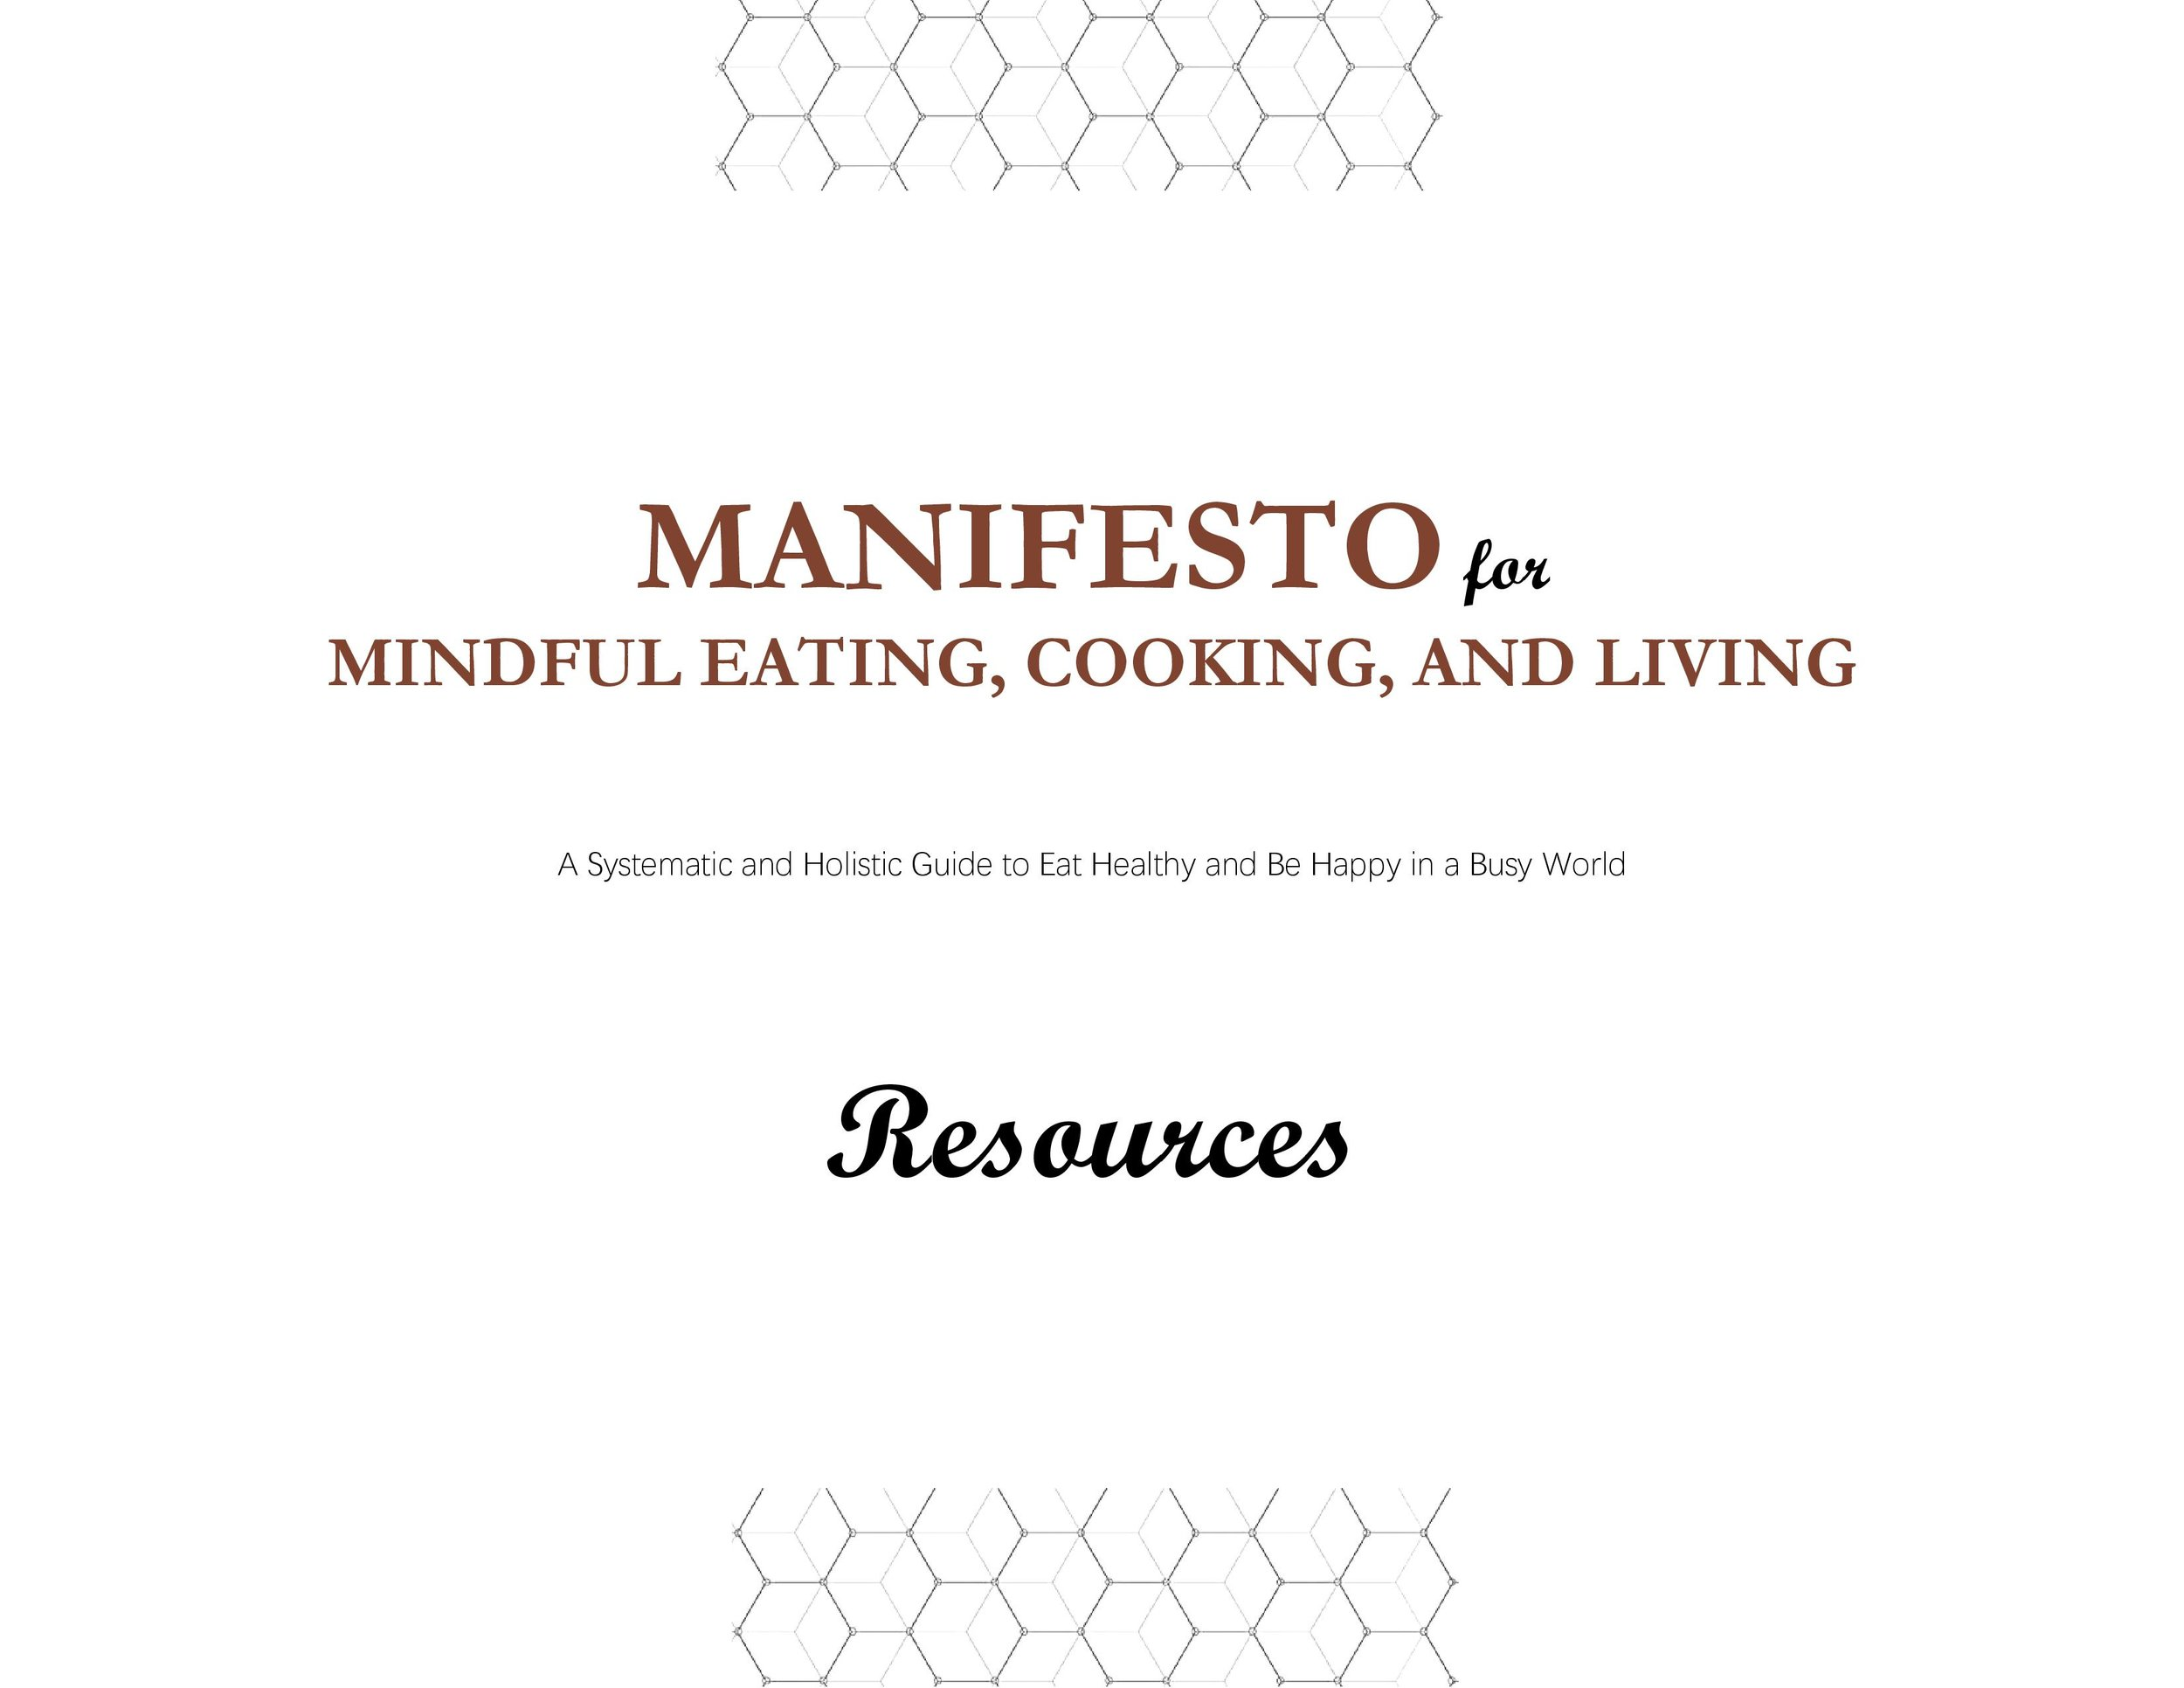 Manifesto for Mindful Eating, Cooking, and Living-page-001.jpg